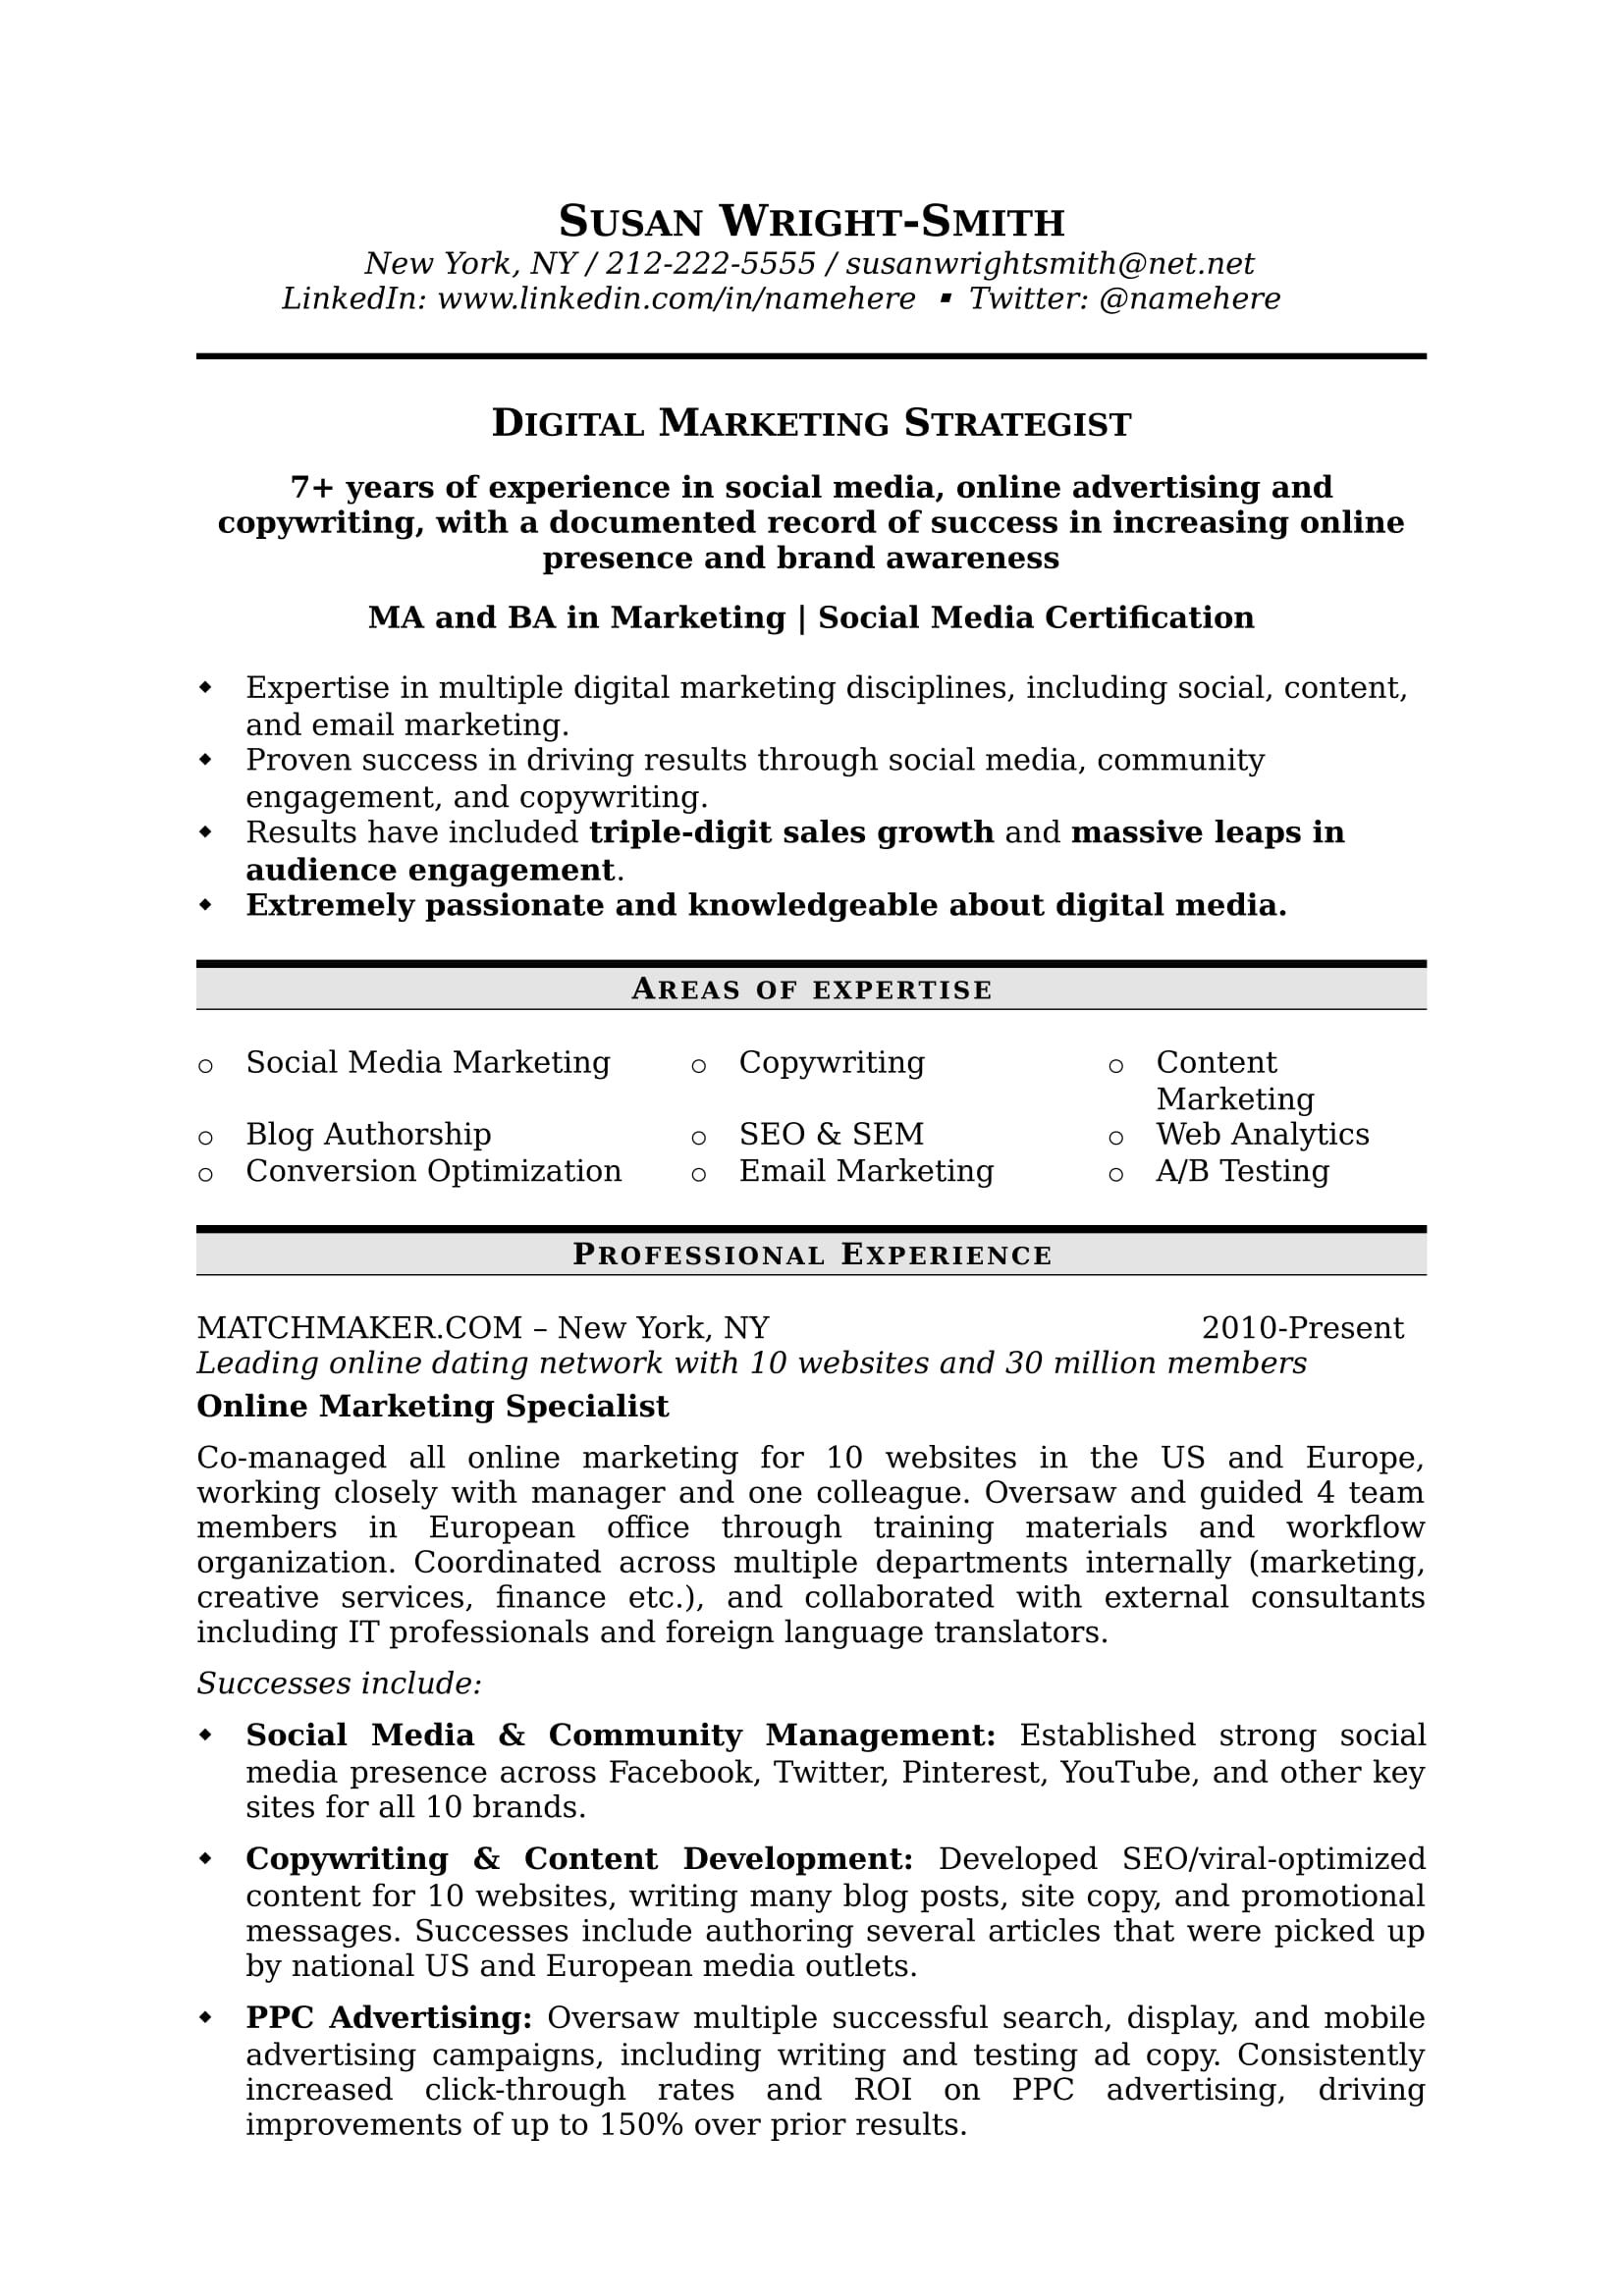 How to Write a Marketing Resume Hiring Managers Will Notice Free - online advertising specialist sample resume